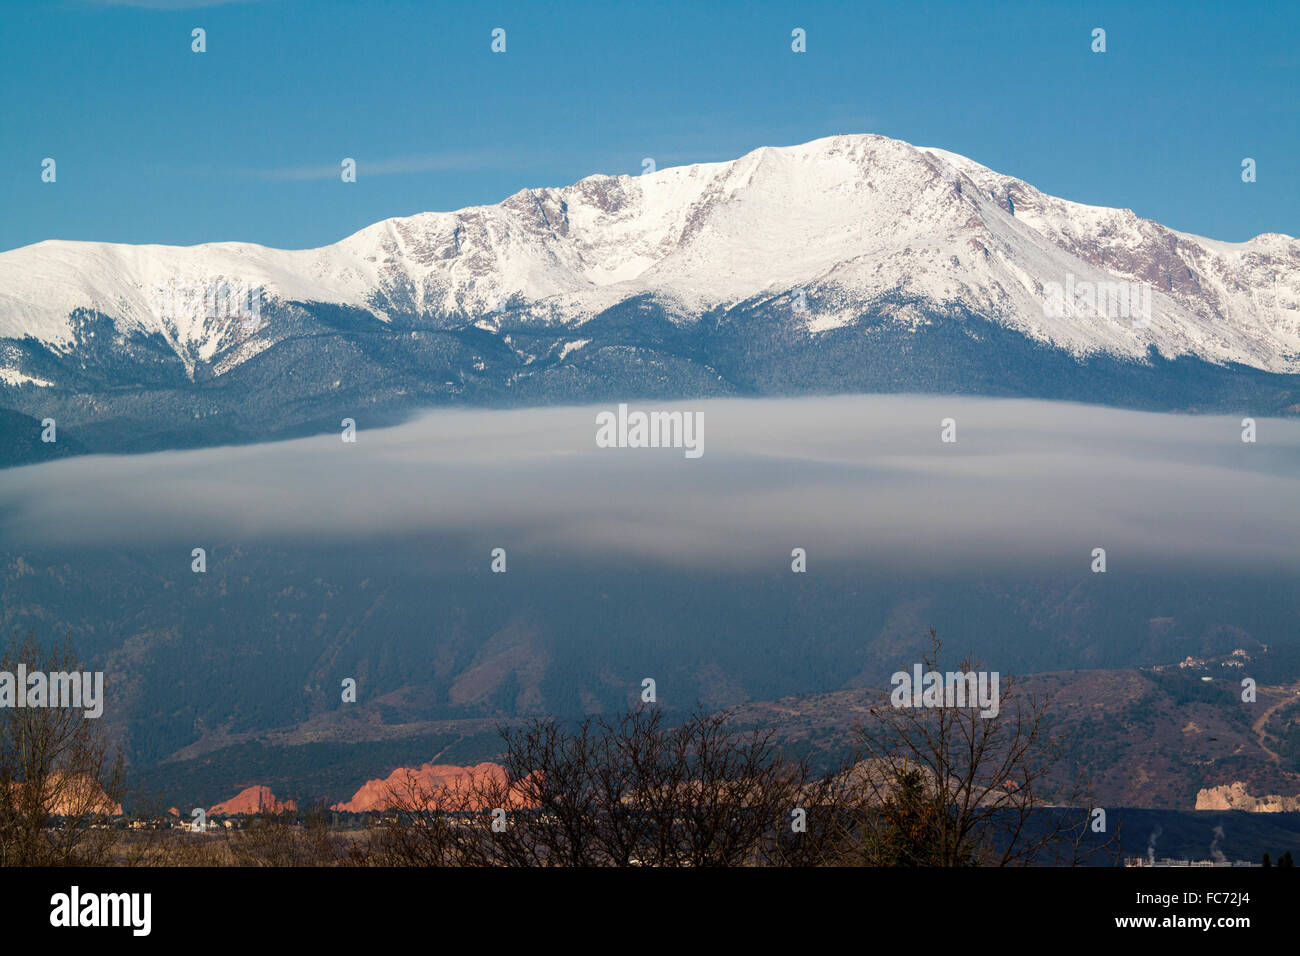 A cloud hangs low in front of snow-capped Pikes Peak on an early spring day - Stock Image